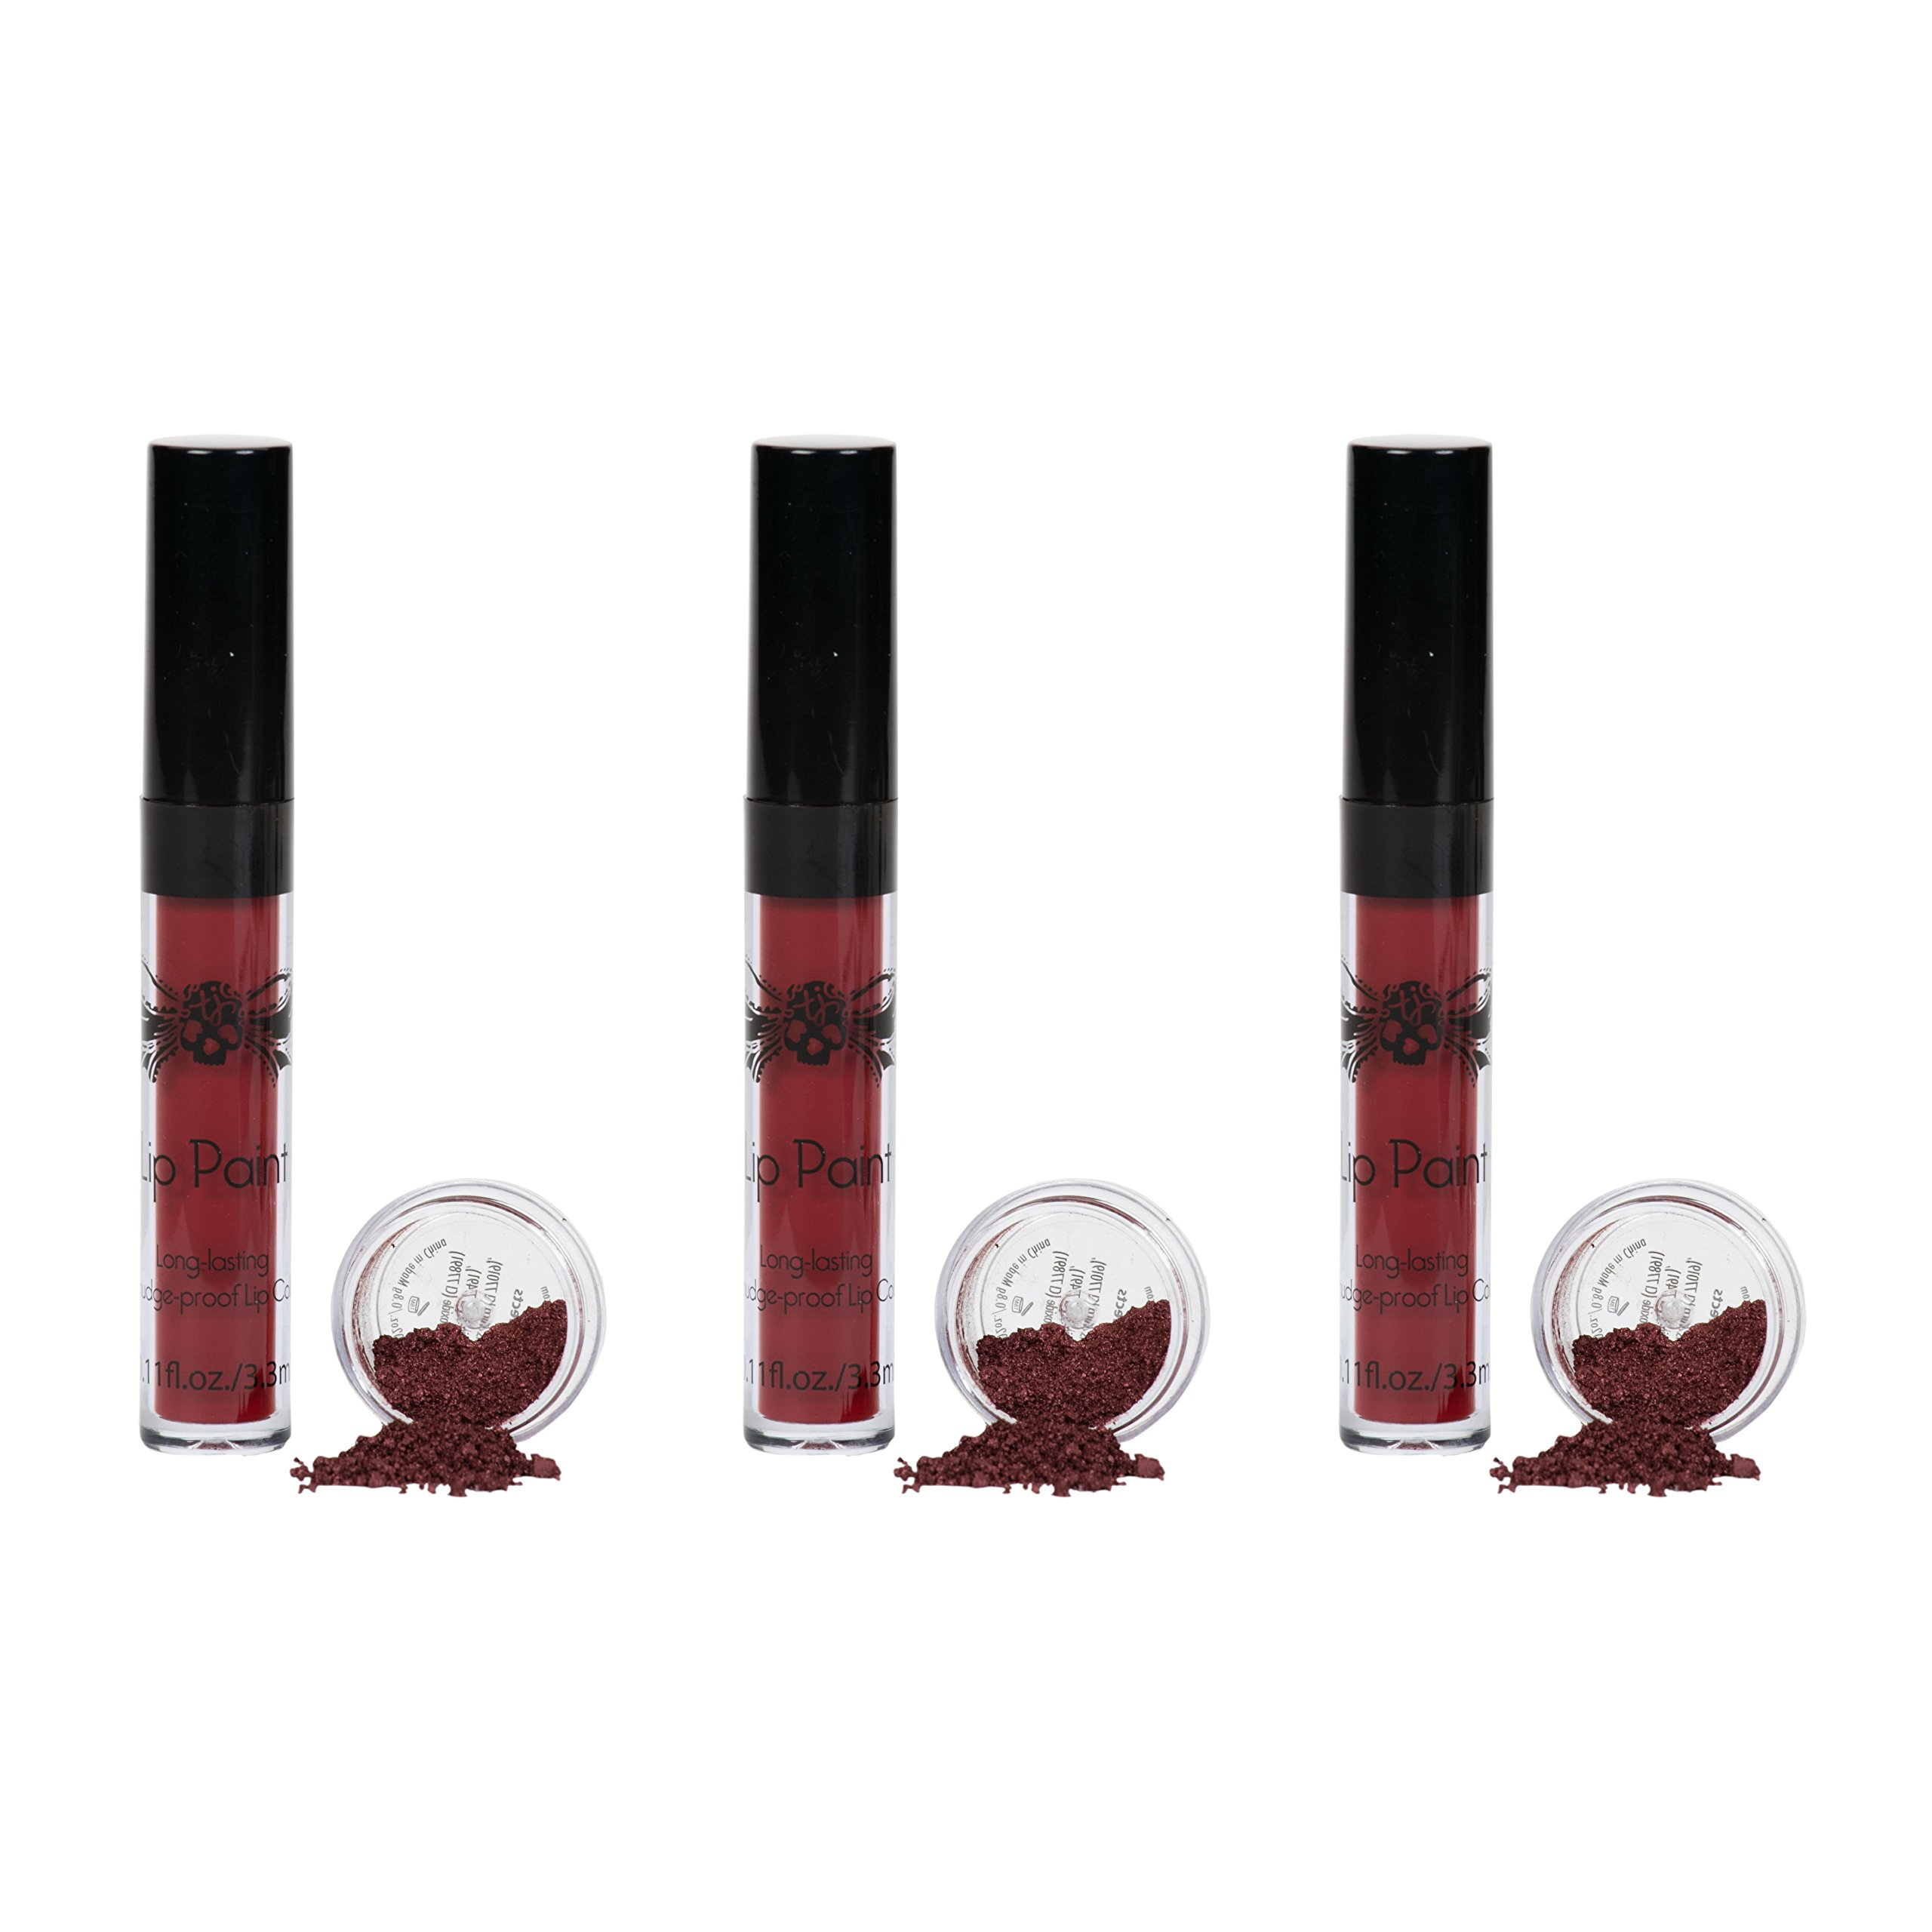 Tattoo Junkee Rebel Lip Kit Bundle - includes 3 Red Long Lasting Liquid Lipsticks + Shimmer Lip Effects, Pack of 3 by TATTOO JUNKEE (Image #1)